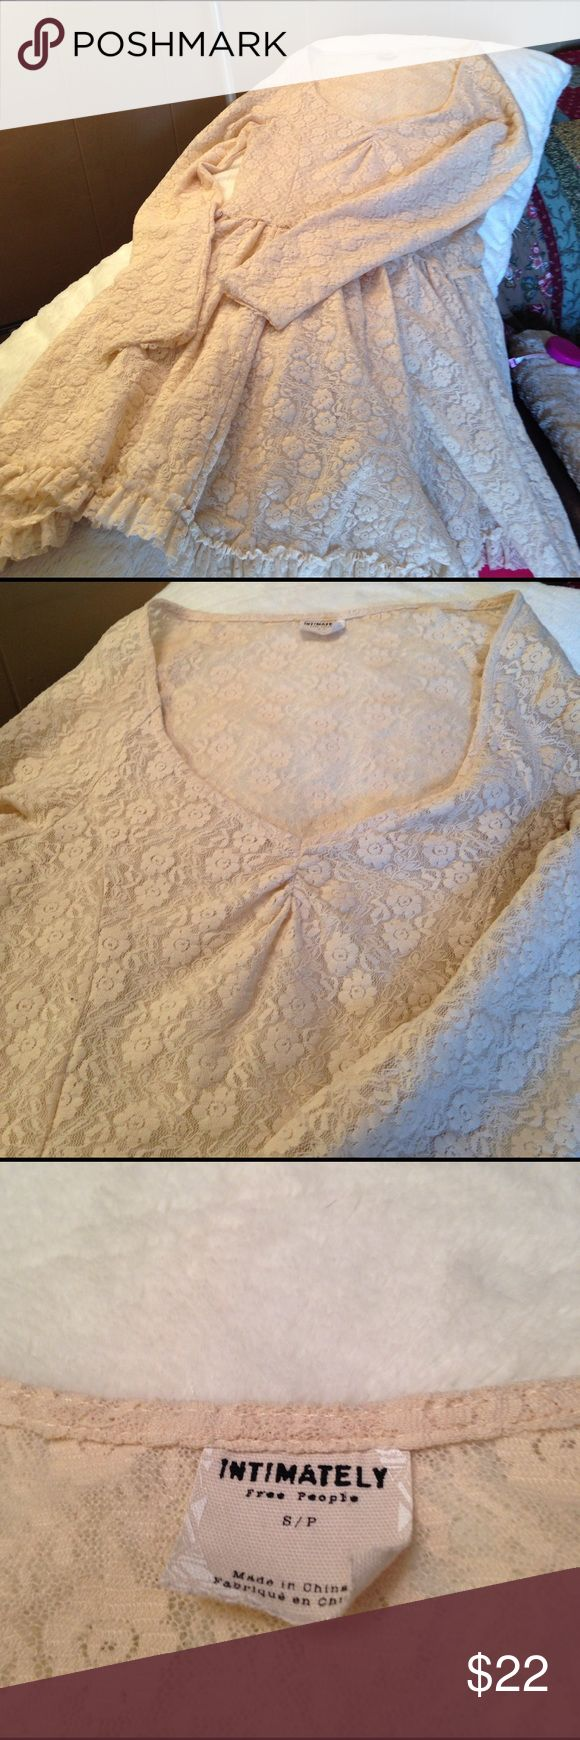 Intimately Free People Lacy Dress Super hot beige lacy dress by Intimately Free People ... could be used as lingerie or even a dress over a beige tank dress or a top over a tank!! Size S. Priced to sell!! Make an offer!! intimately free people Tops